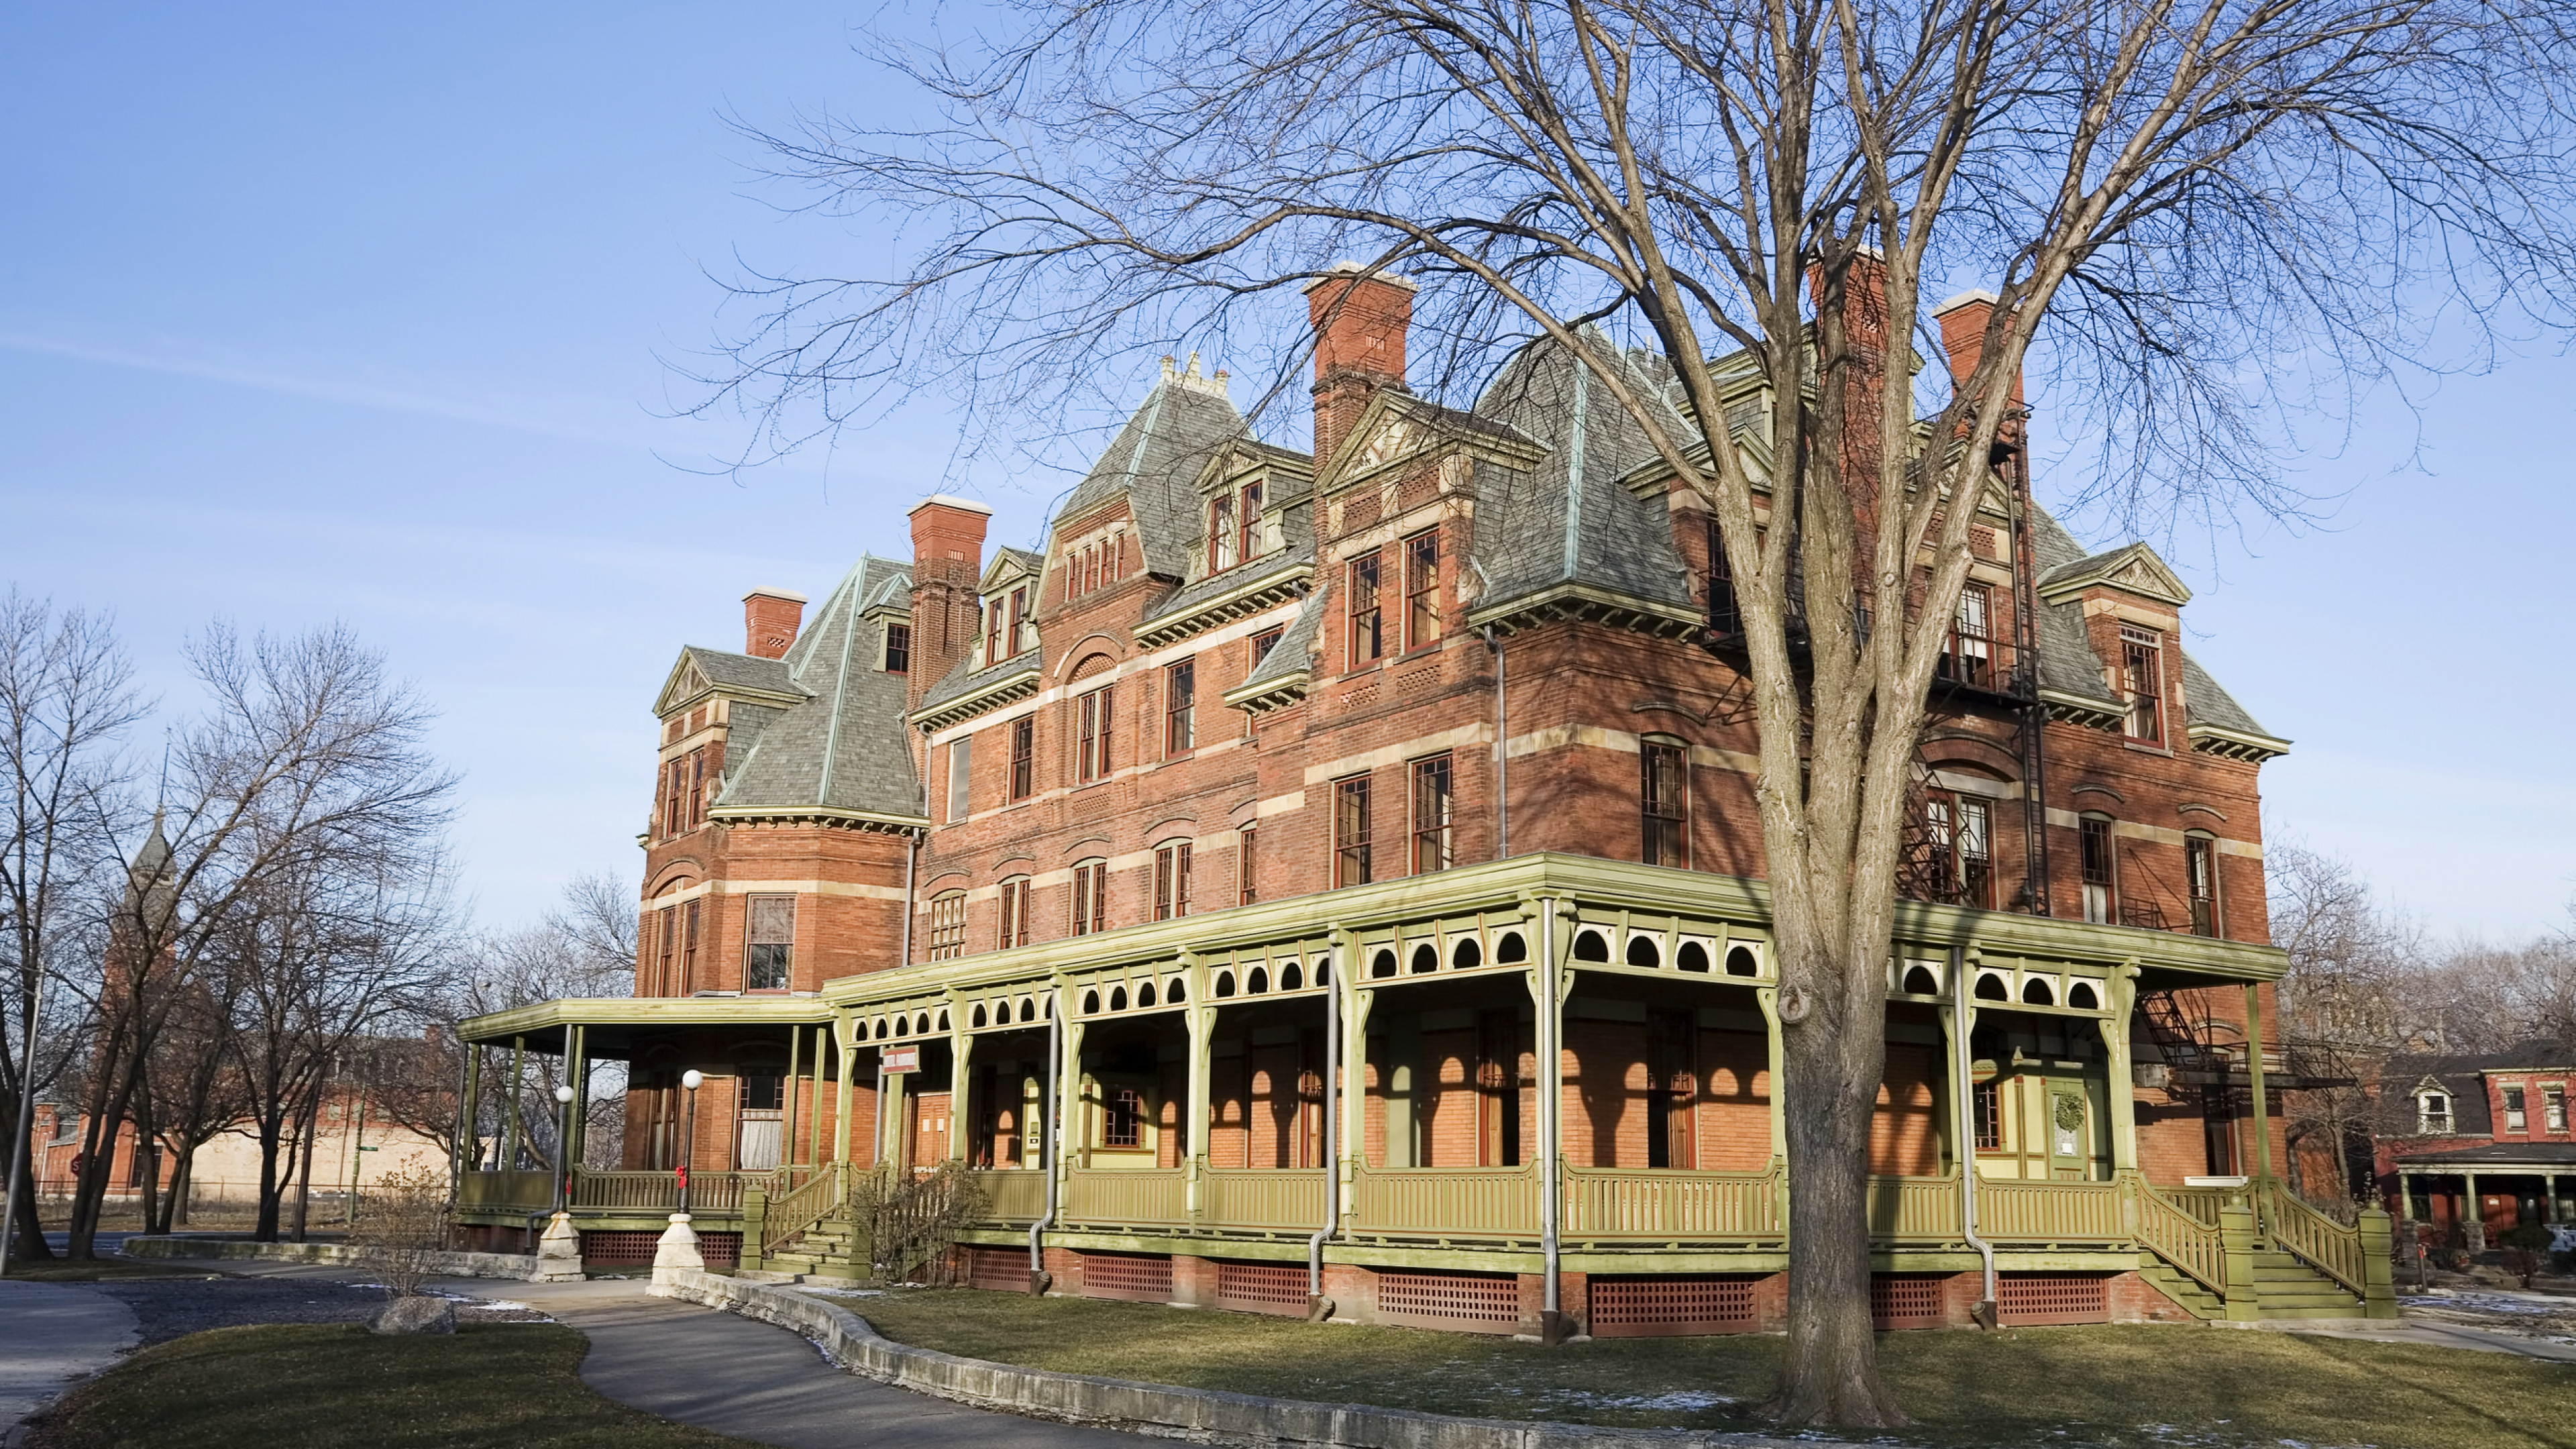 Pullman National Monument building